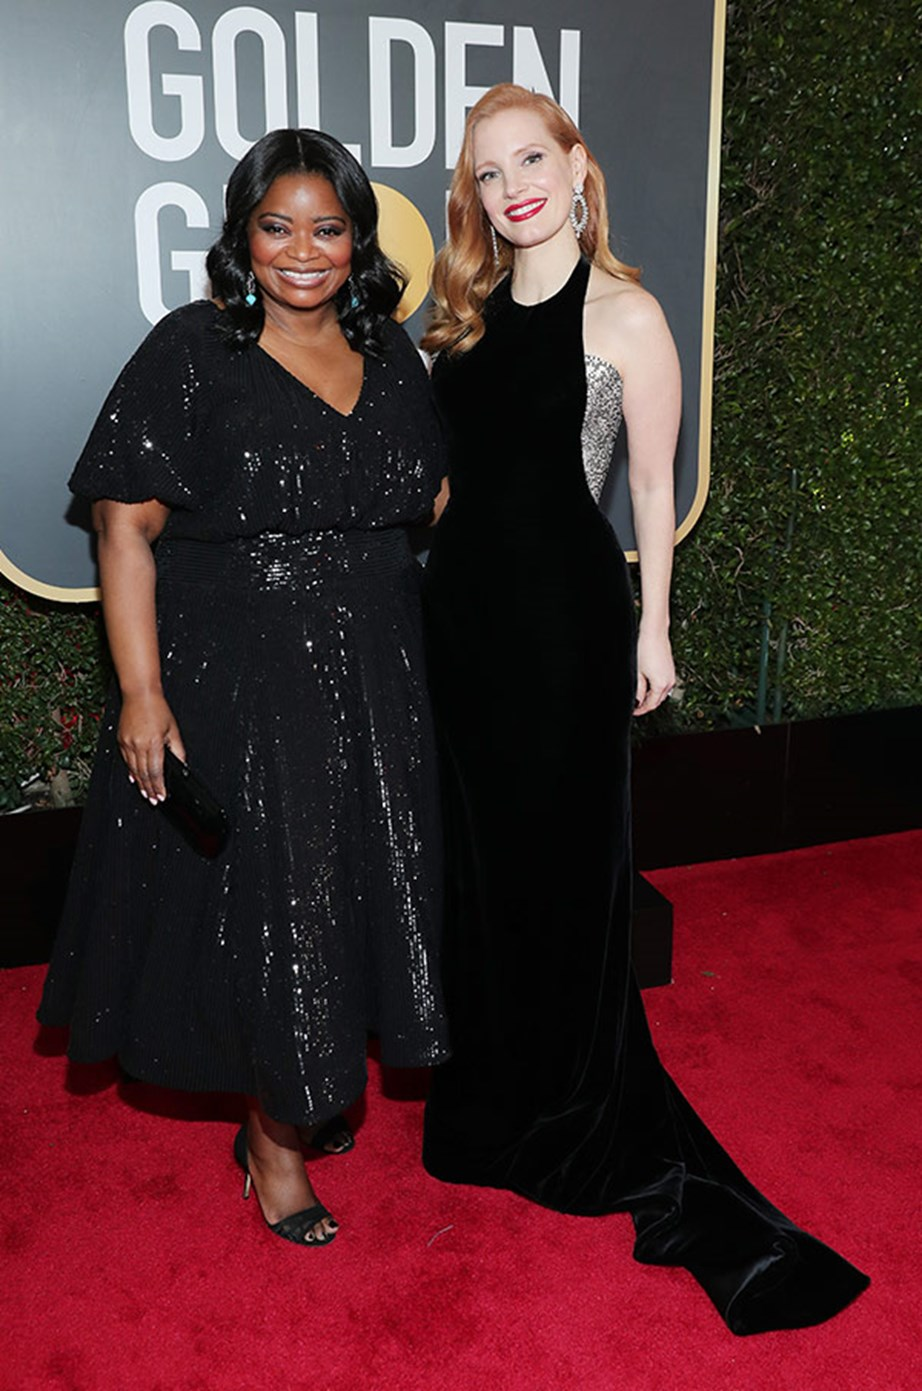 Pals Octavia Spencer and Jessica Chastain make for a dazzling duo.